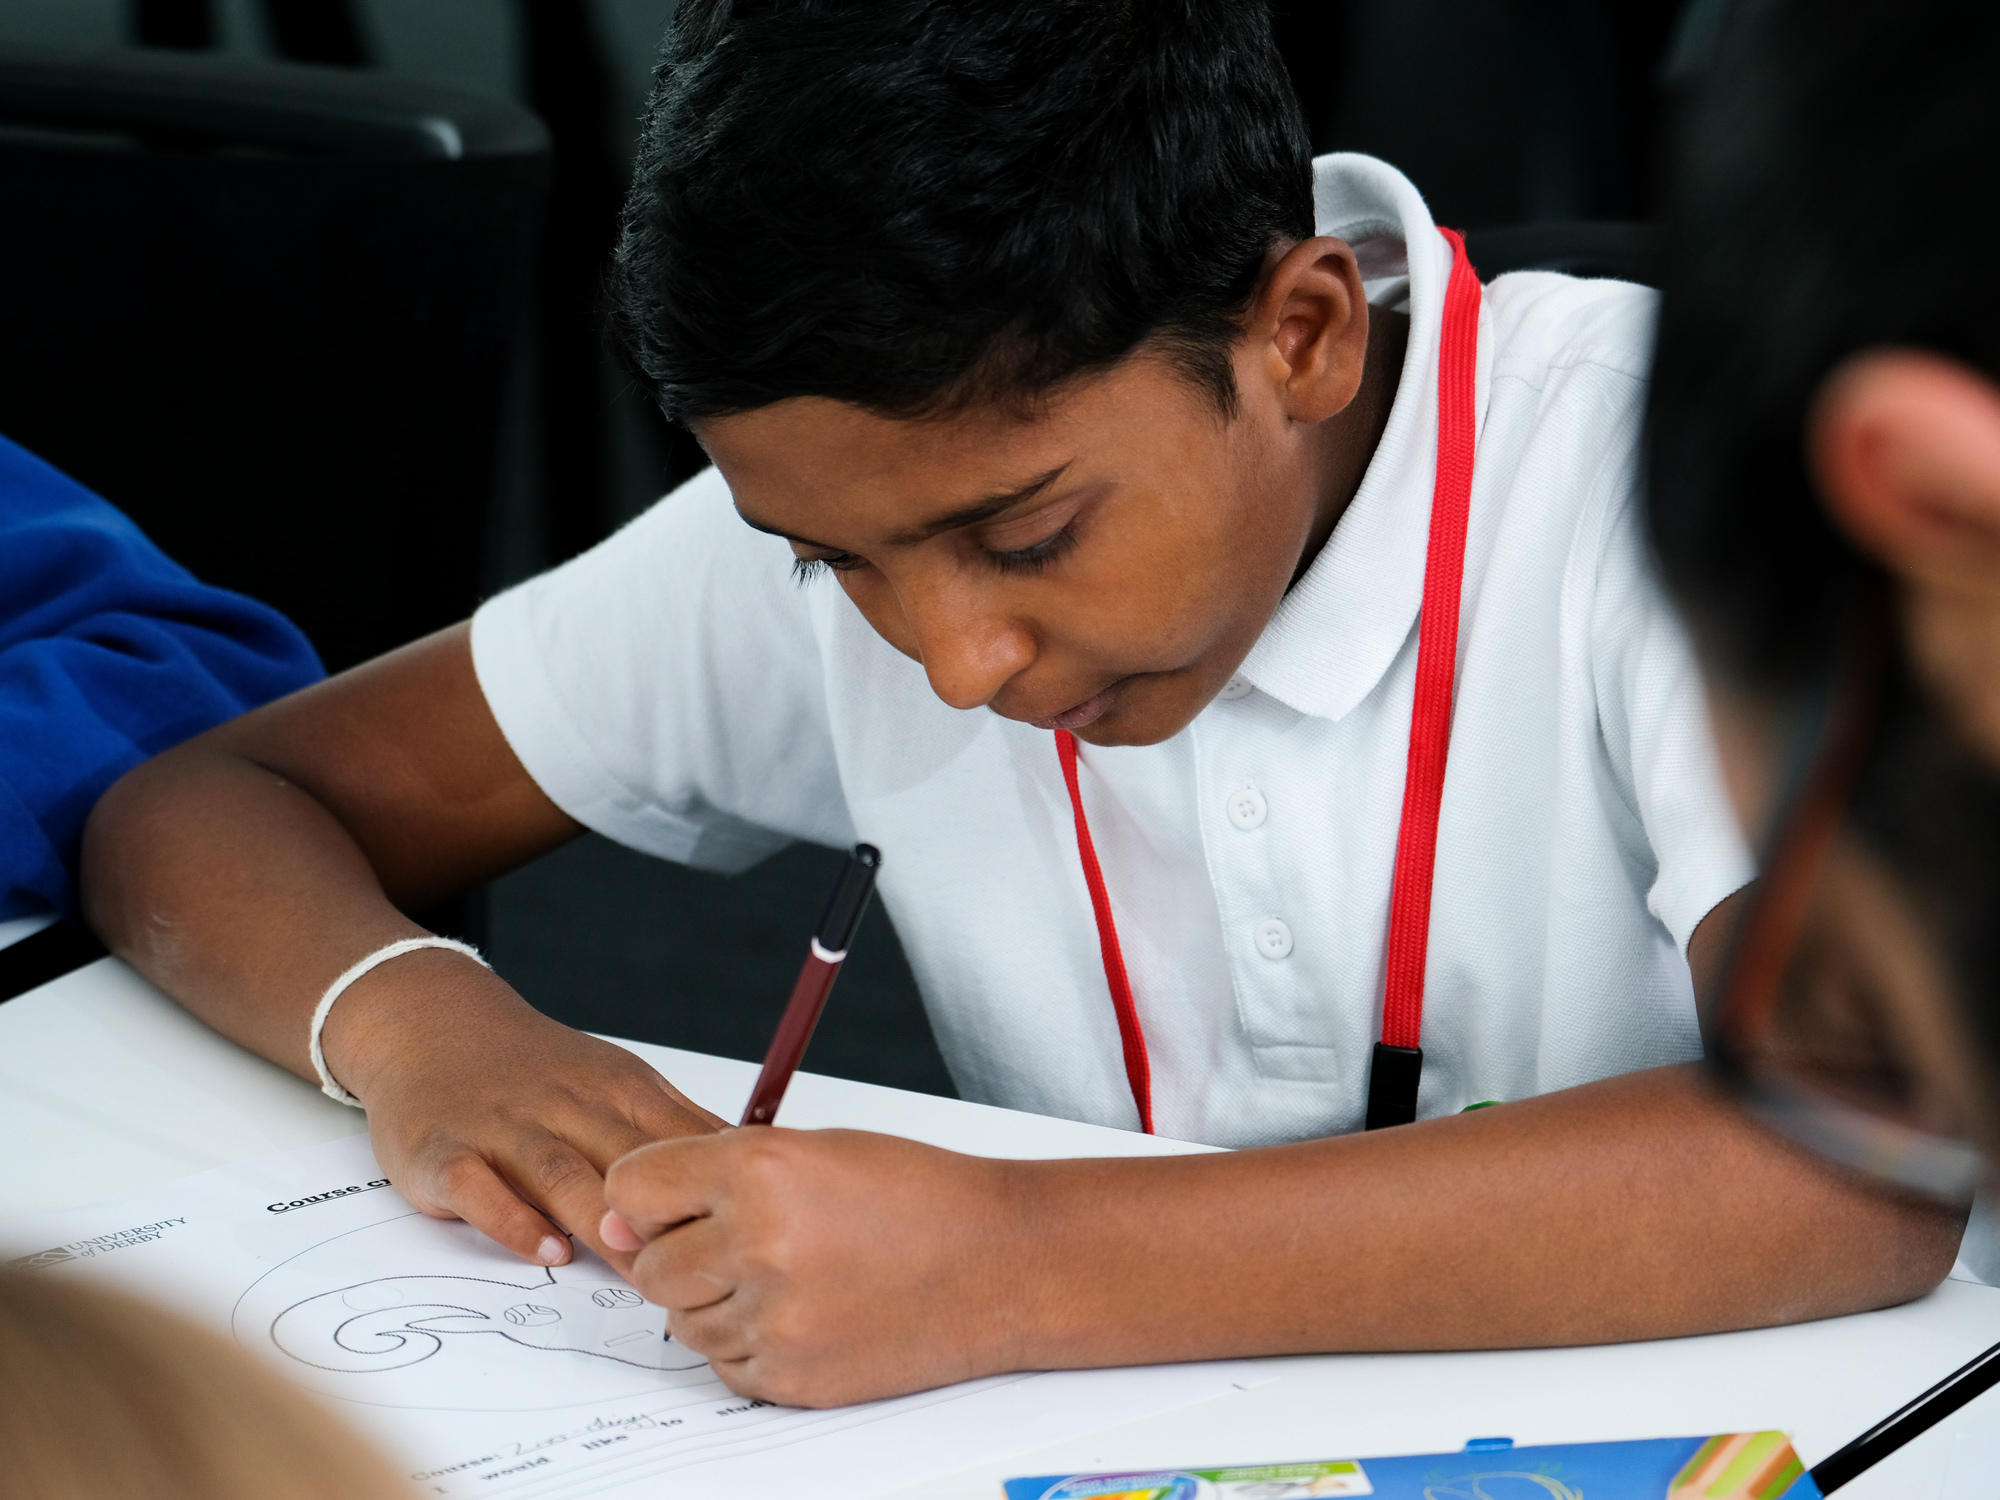 A primary school aged student colouring in a picture in a classroom.